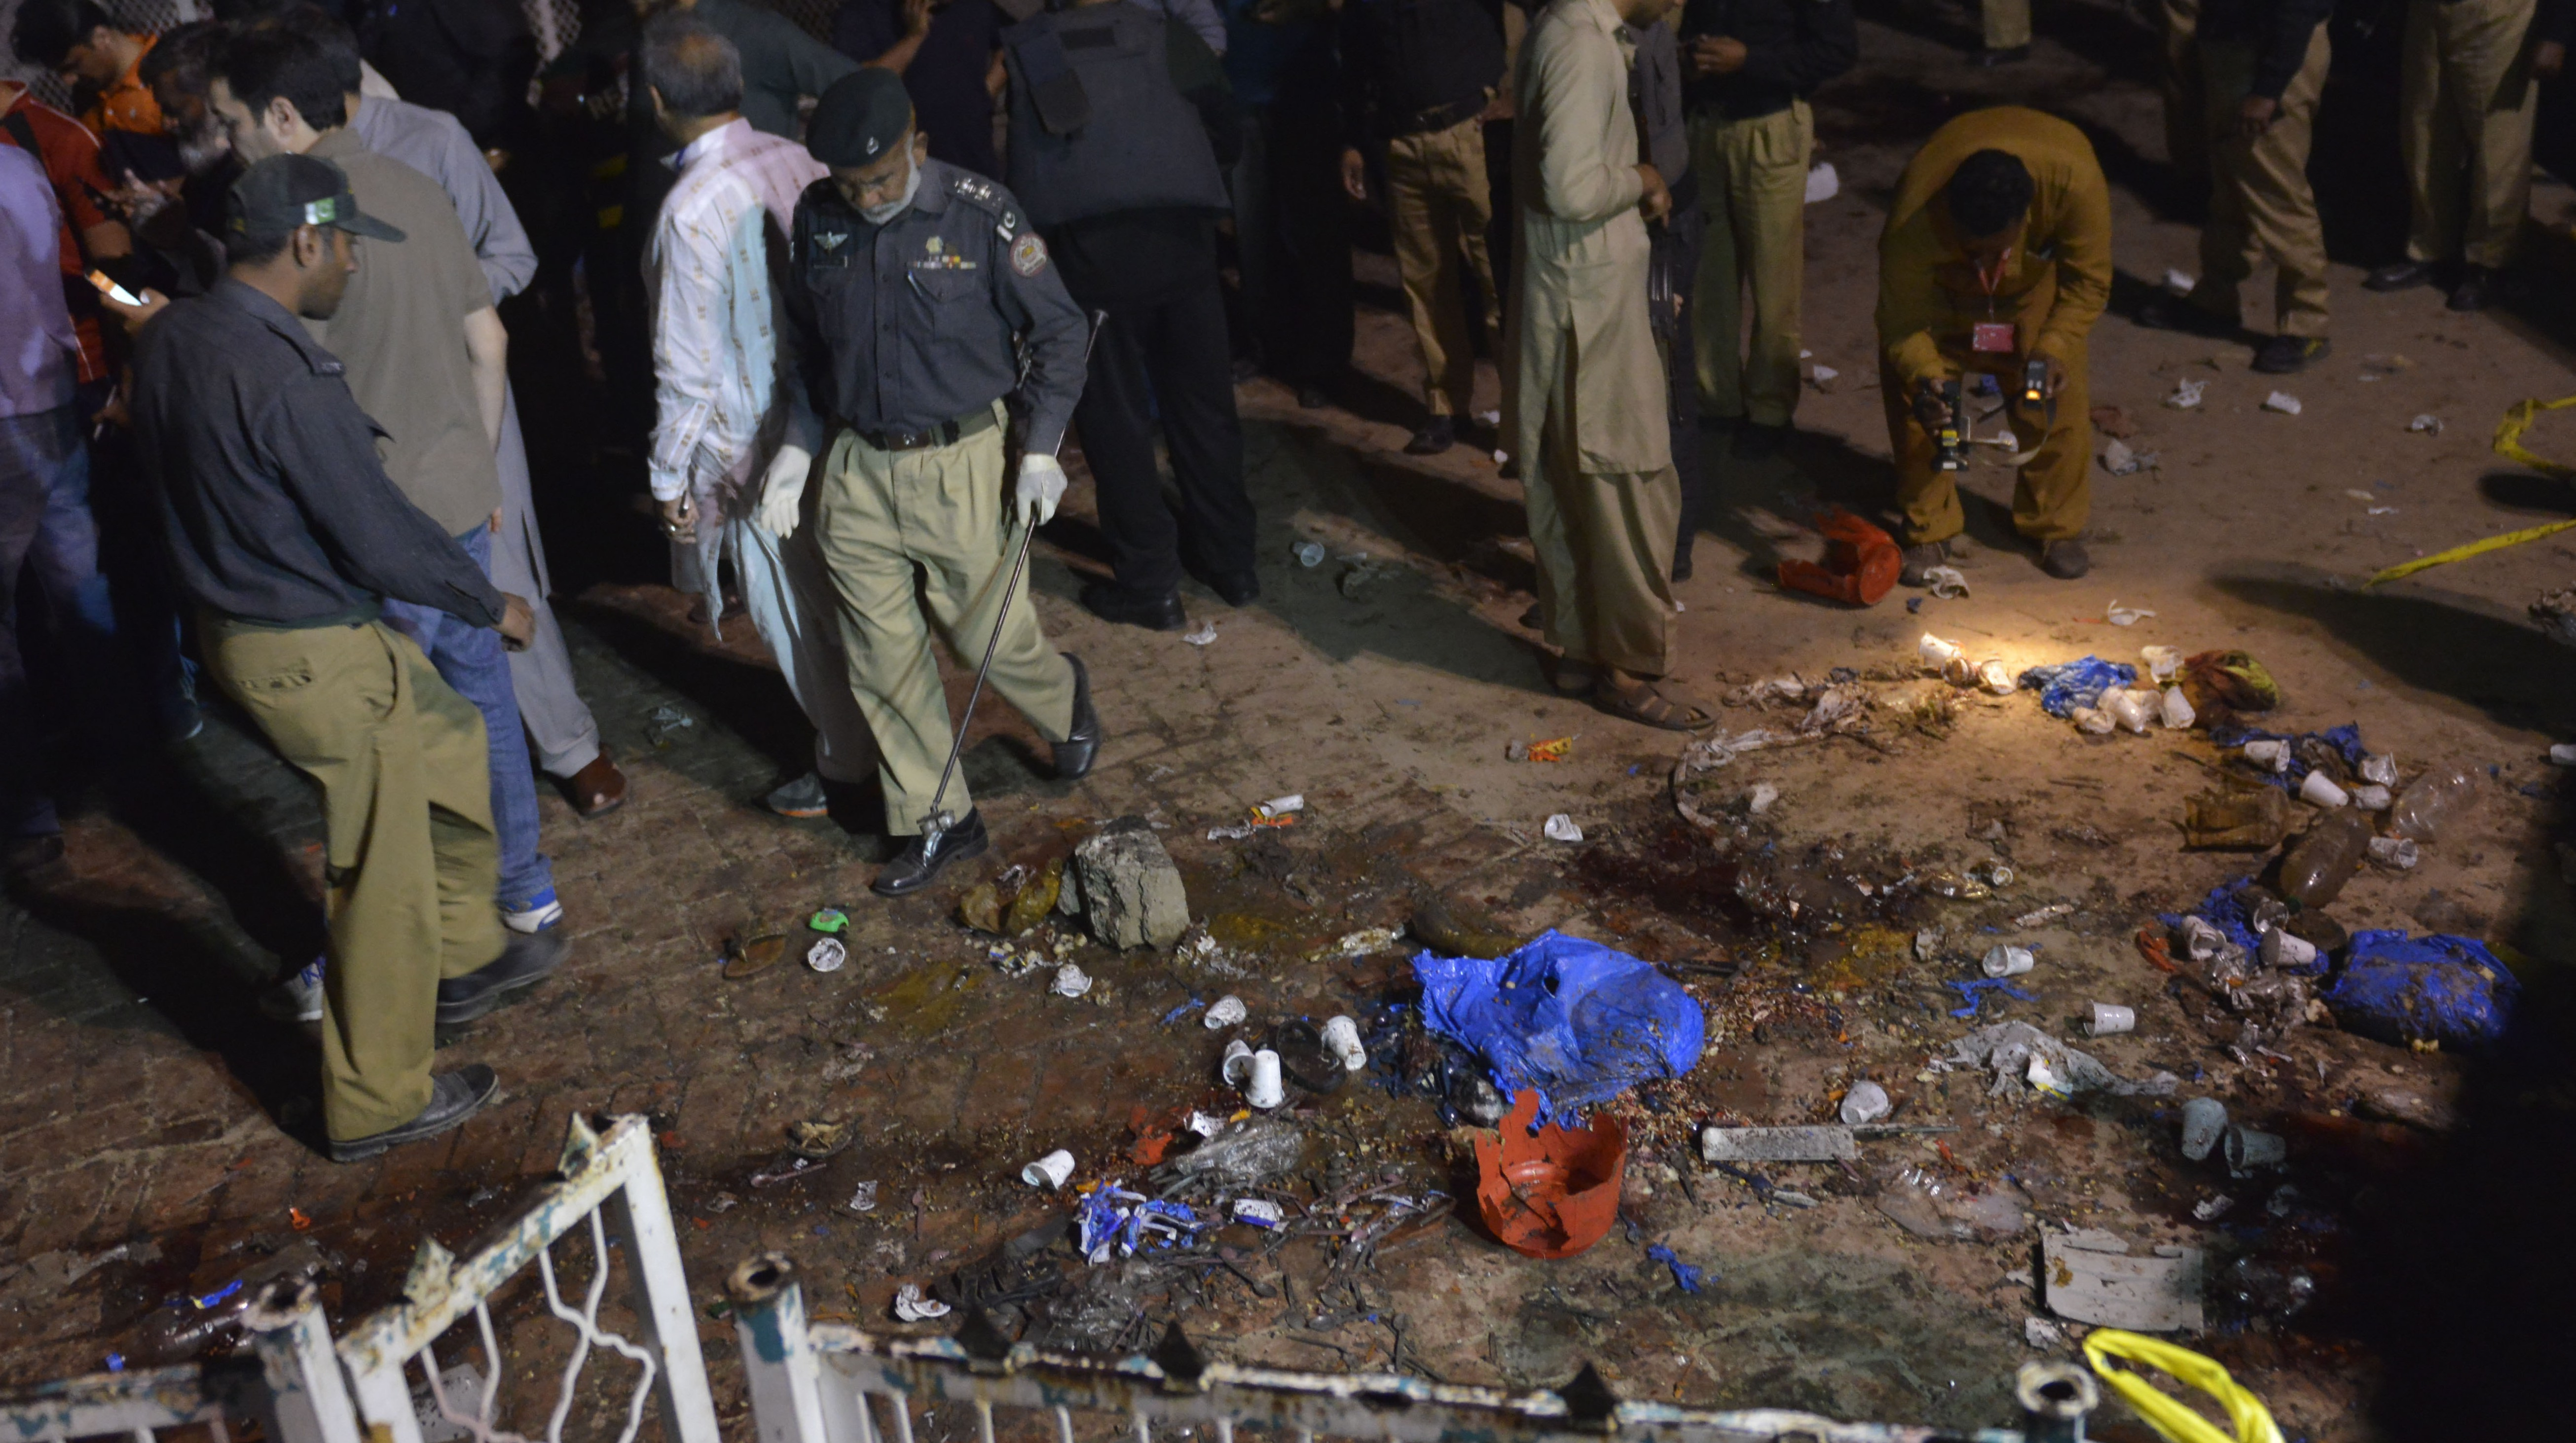 Pakistani rescuers and officials gather at a bomb blast site in Lahore on March 27, 2016. (Getty)